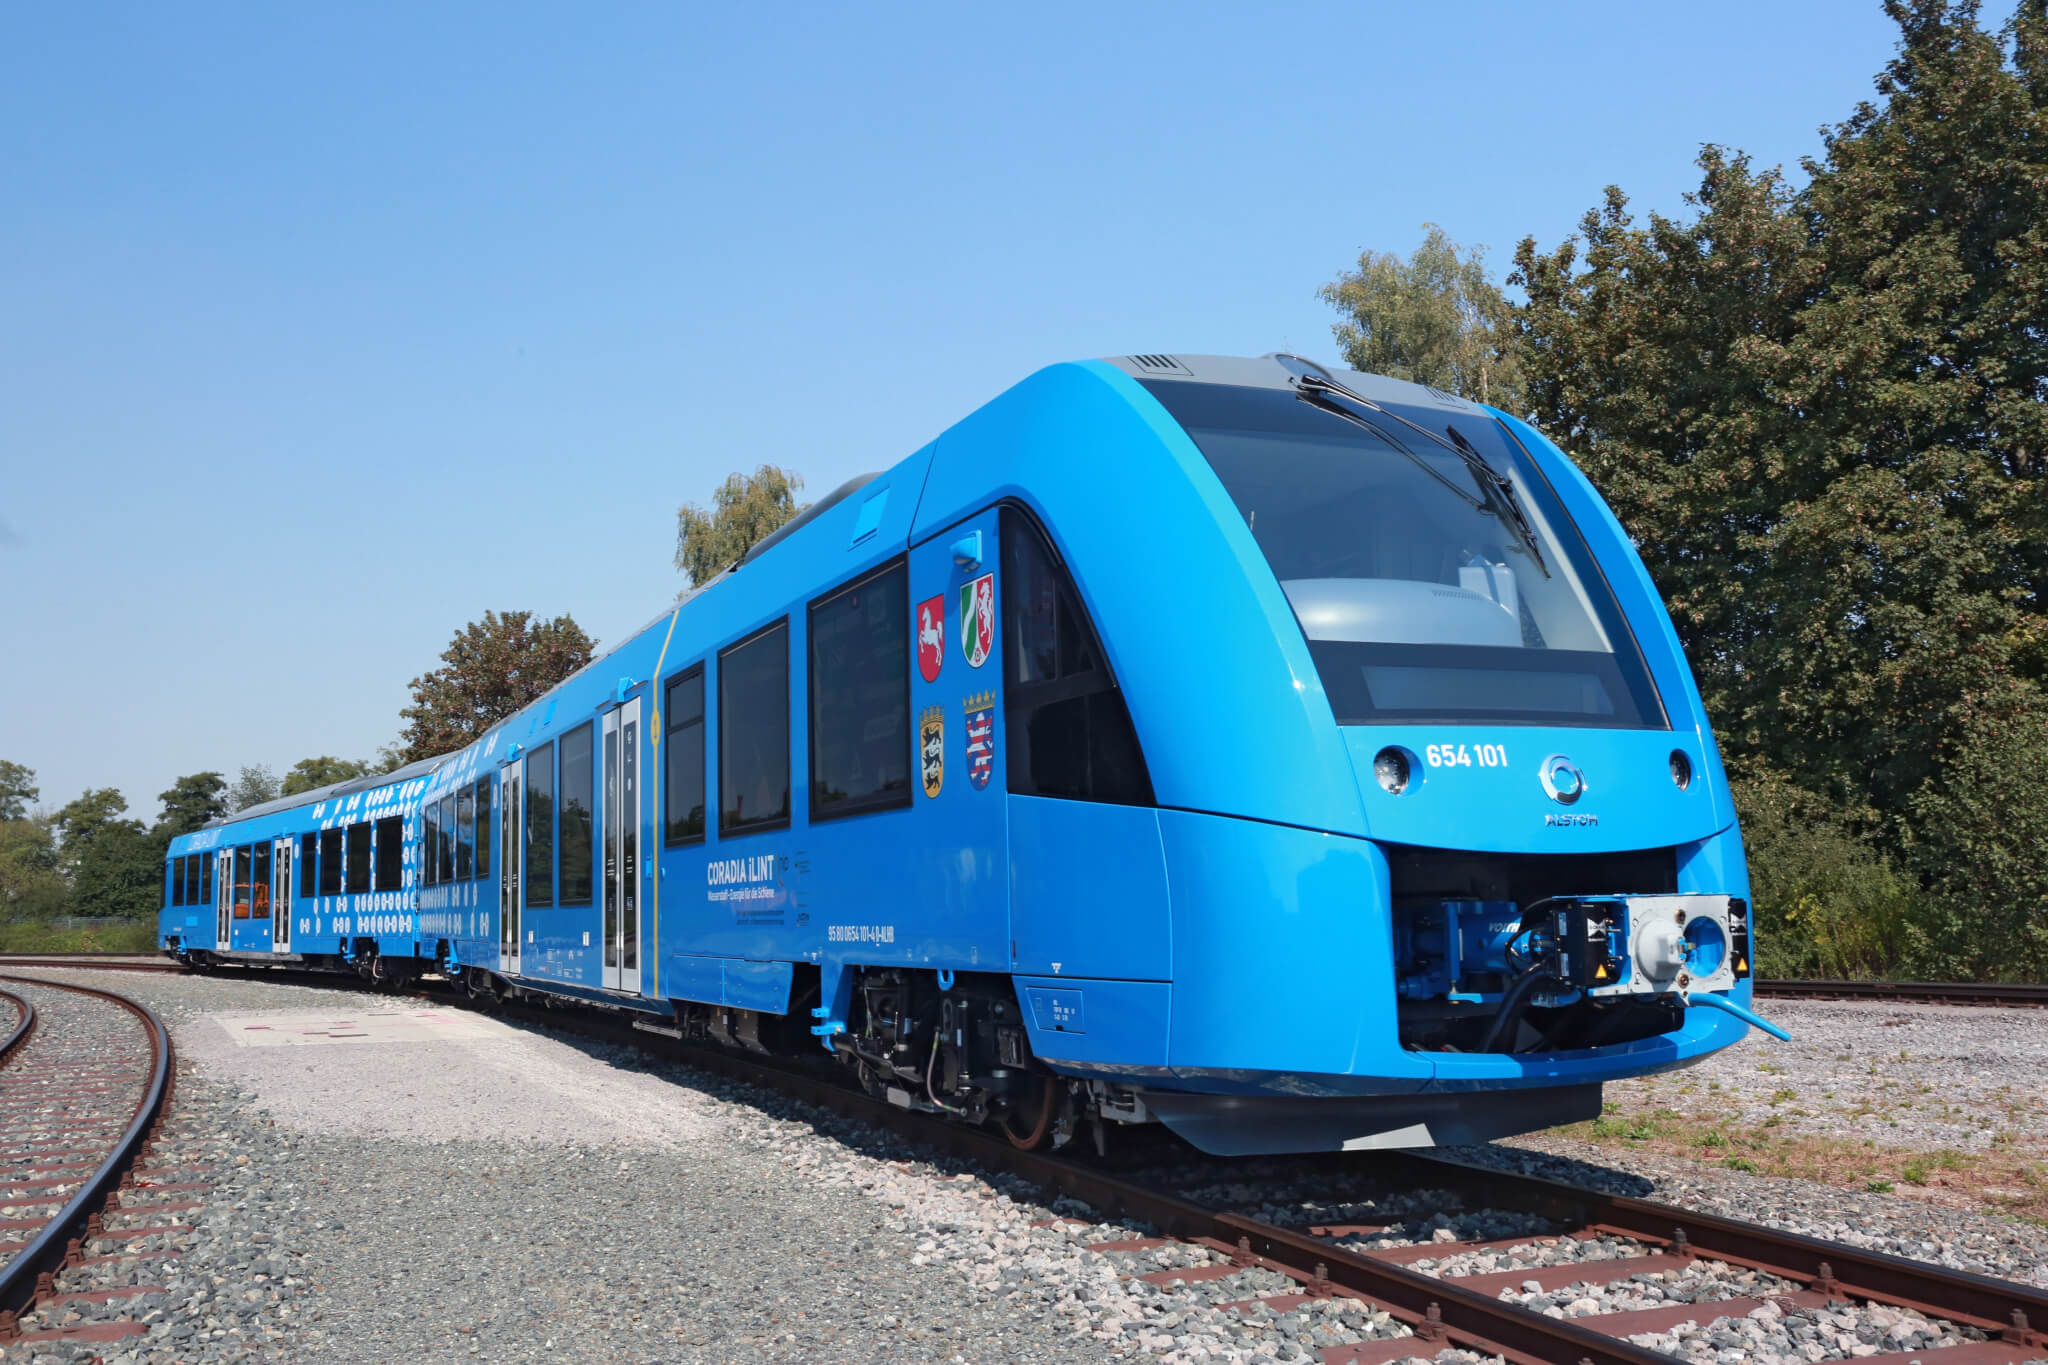 Alstom plans to introduce hydrogen trains to the UK